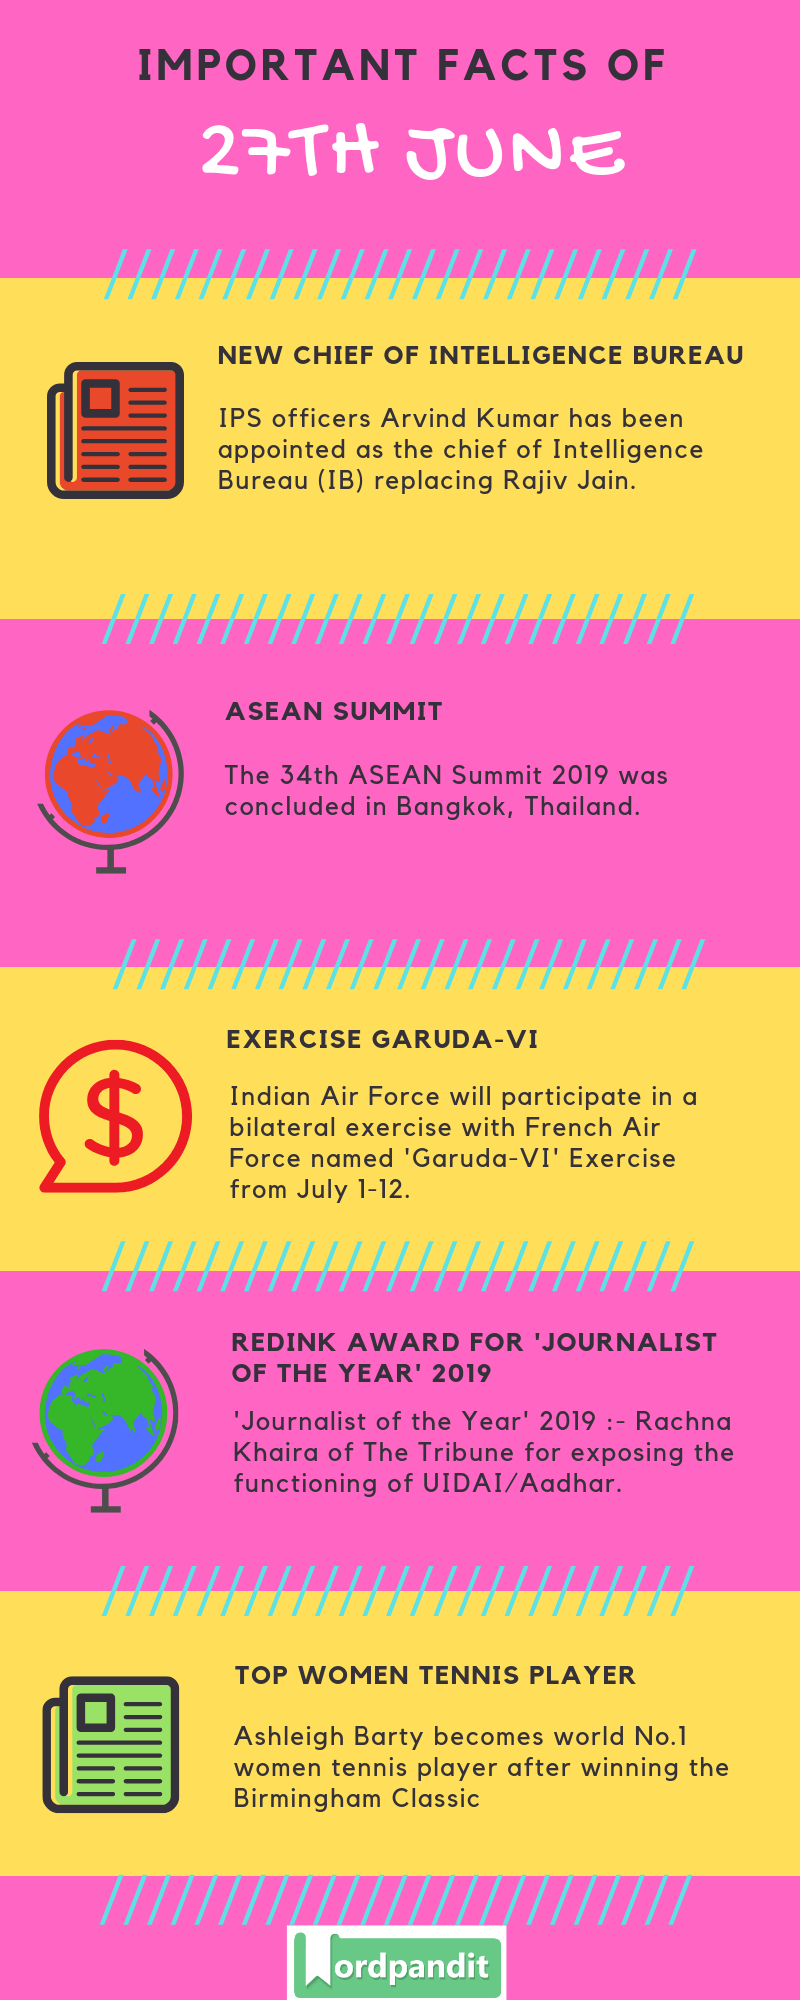 Daily Current Affairs 27 June 2019 Current Affairs Quiz 27 June 2019 Current Affairs Infographic